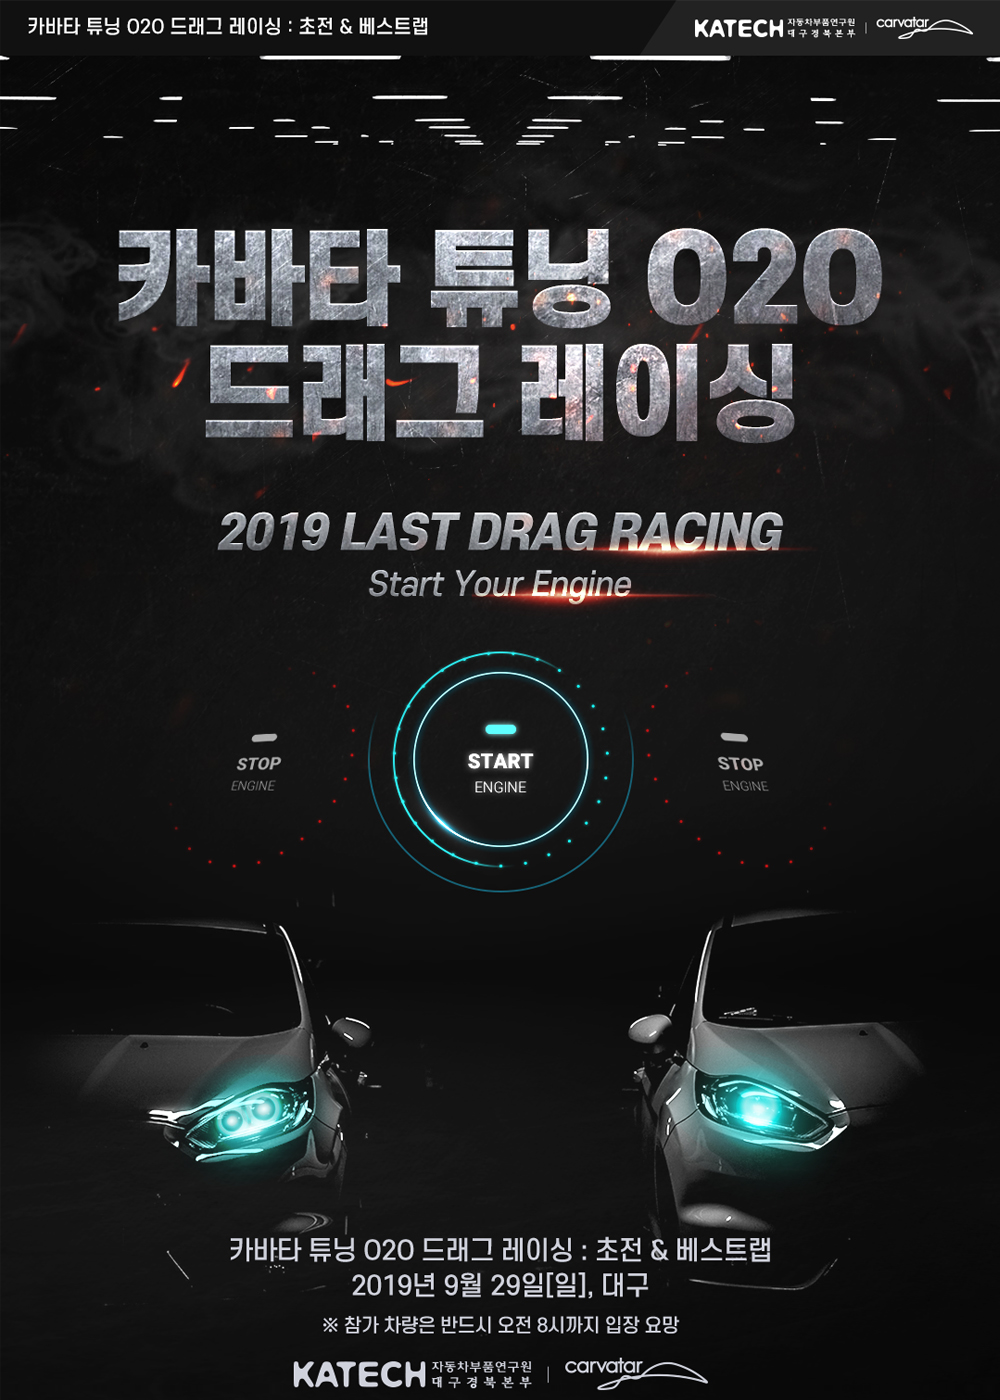 carvatar_o2o_drag_racing.jpg